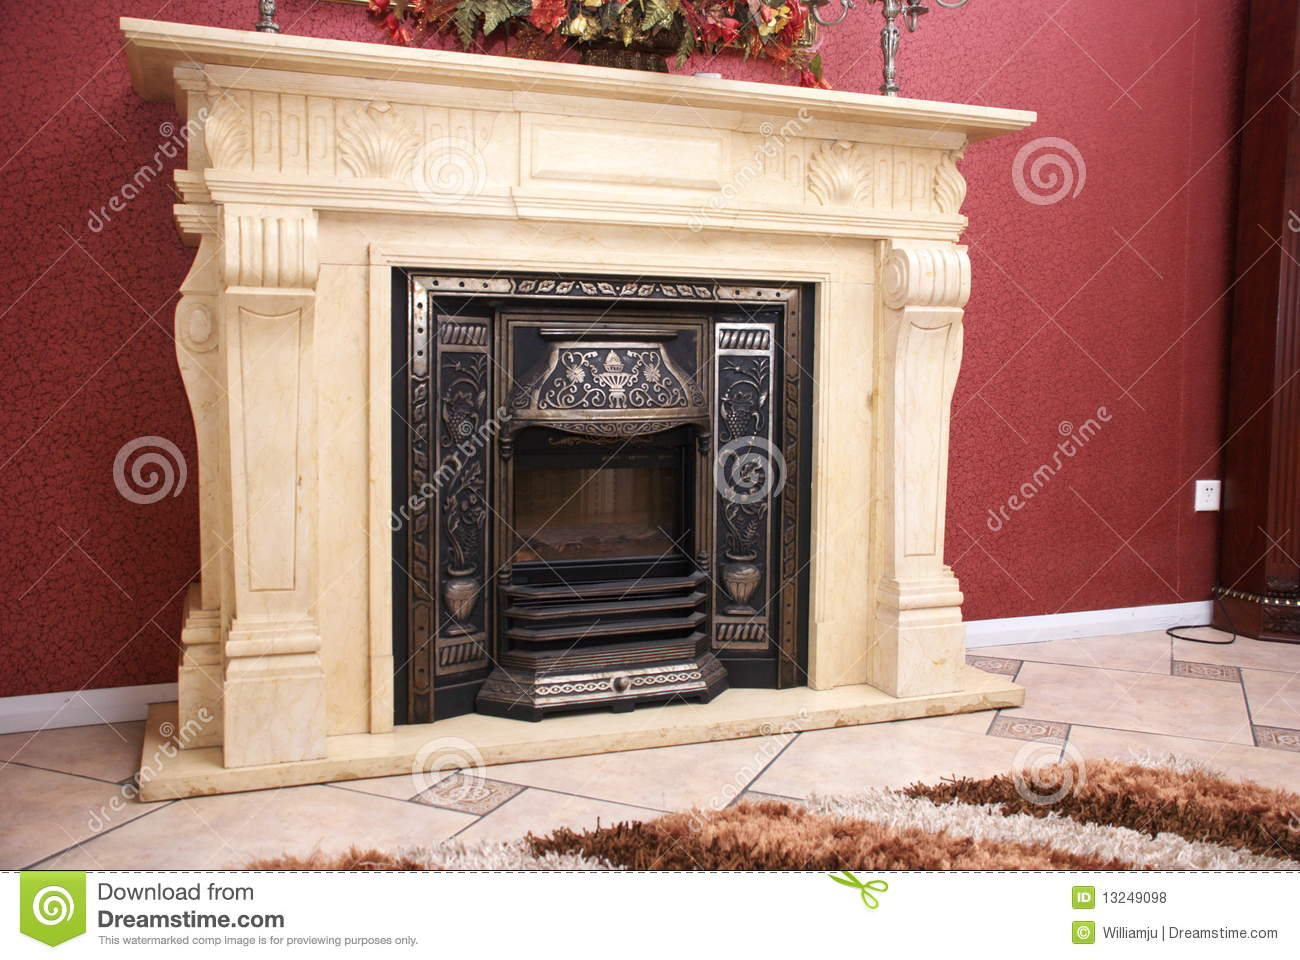 fireplace royalty free stock photos image 13249098